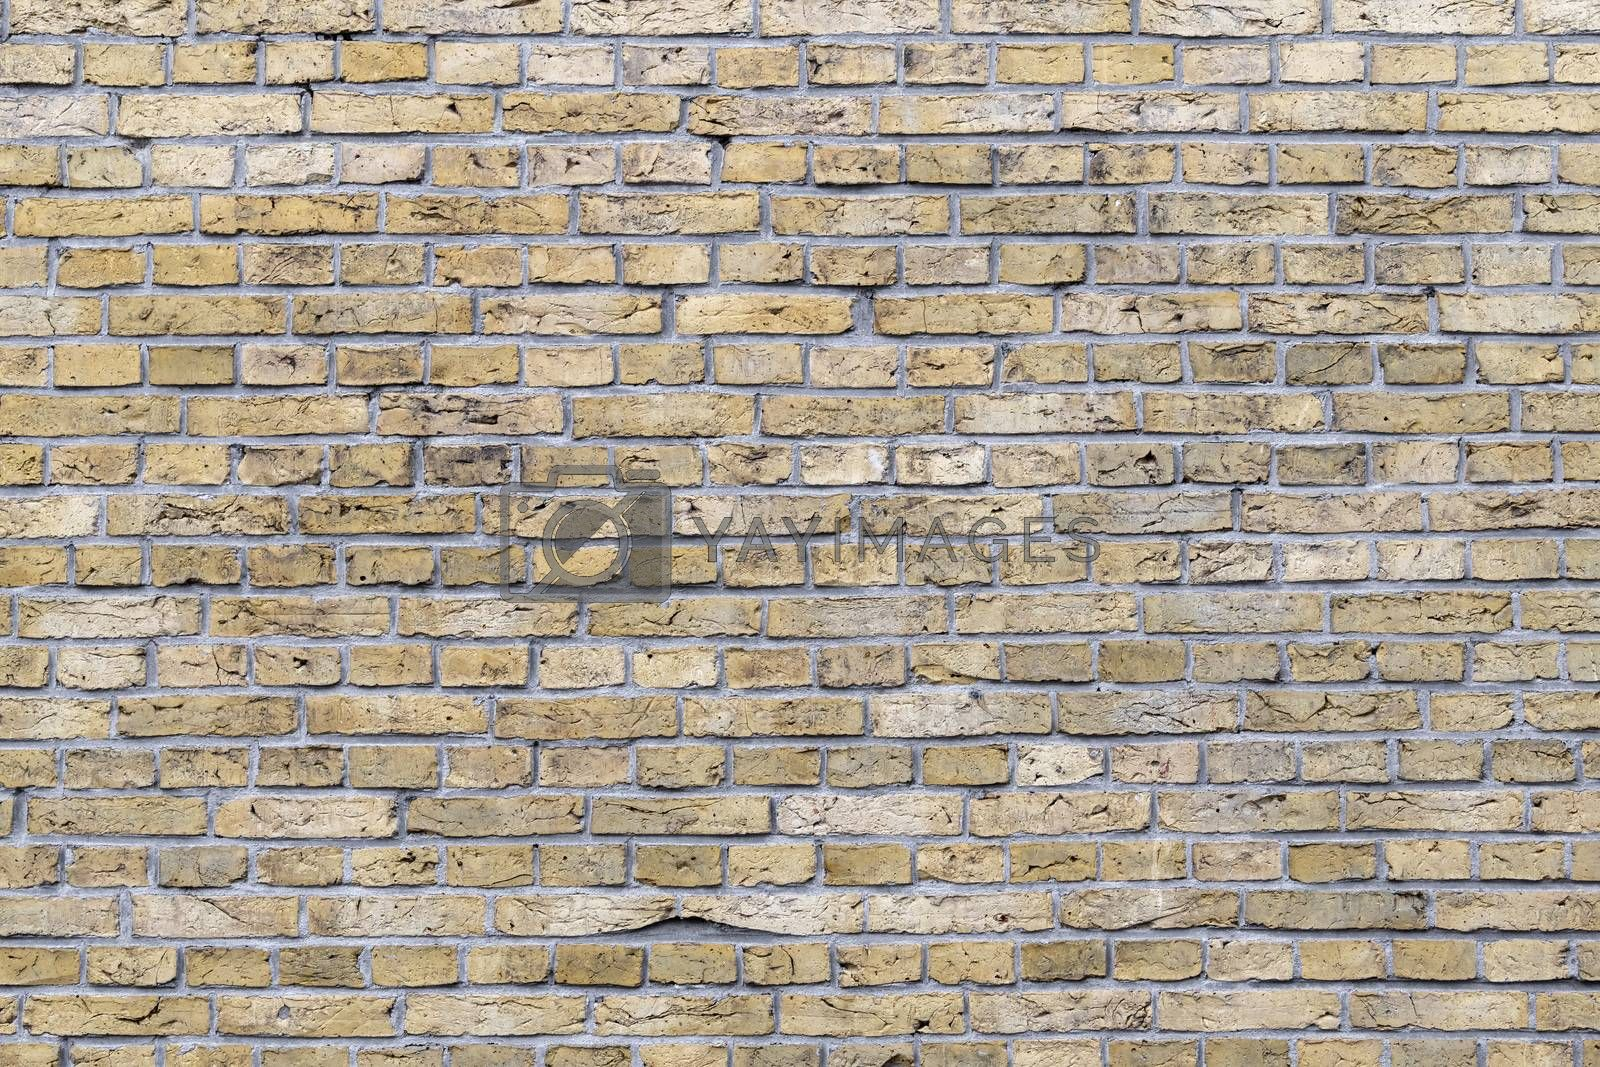 Background Photo of historic yellow brickwork in the North of the Netherlands